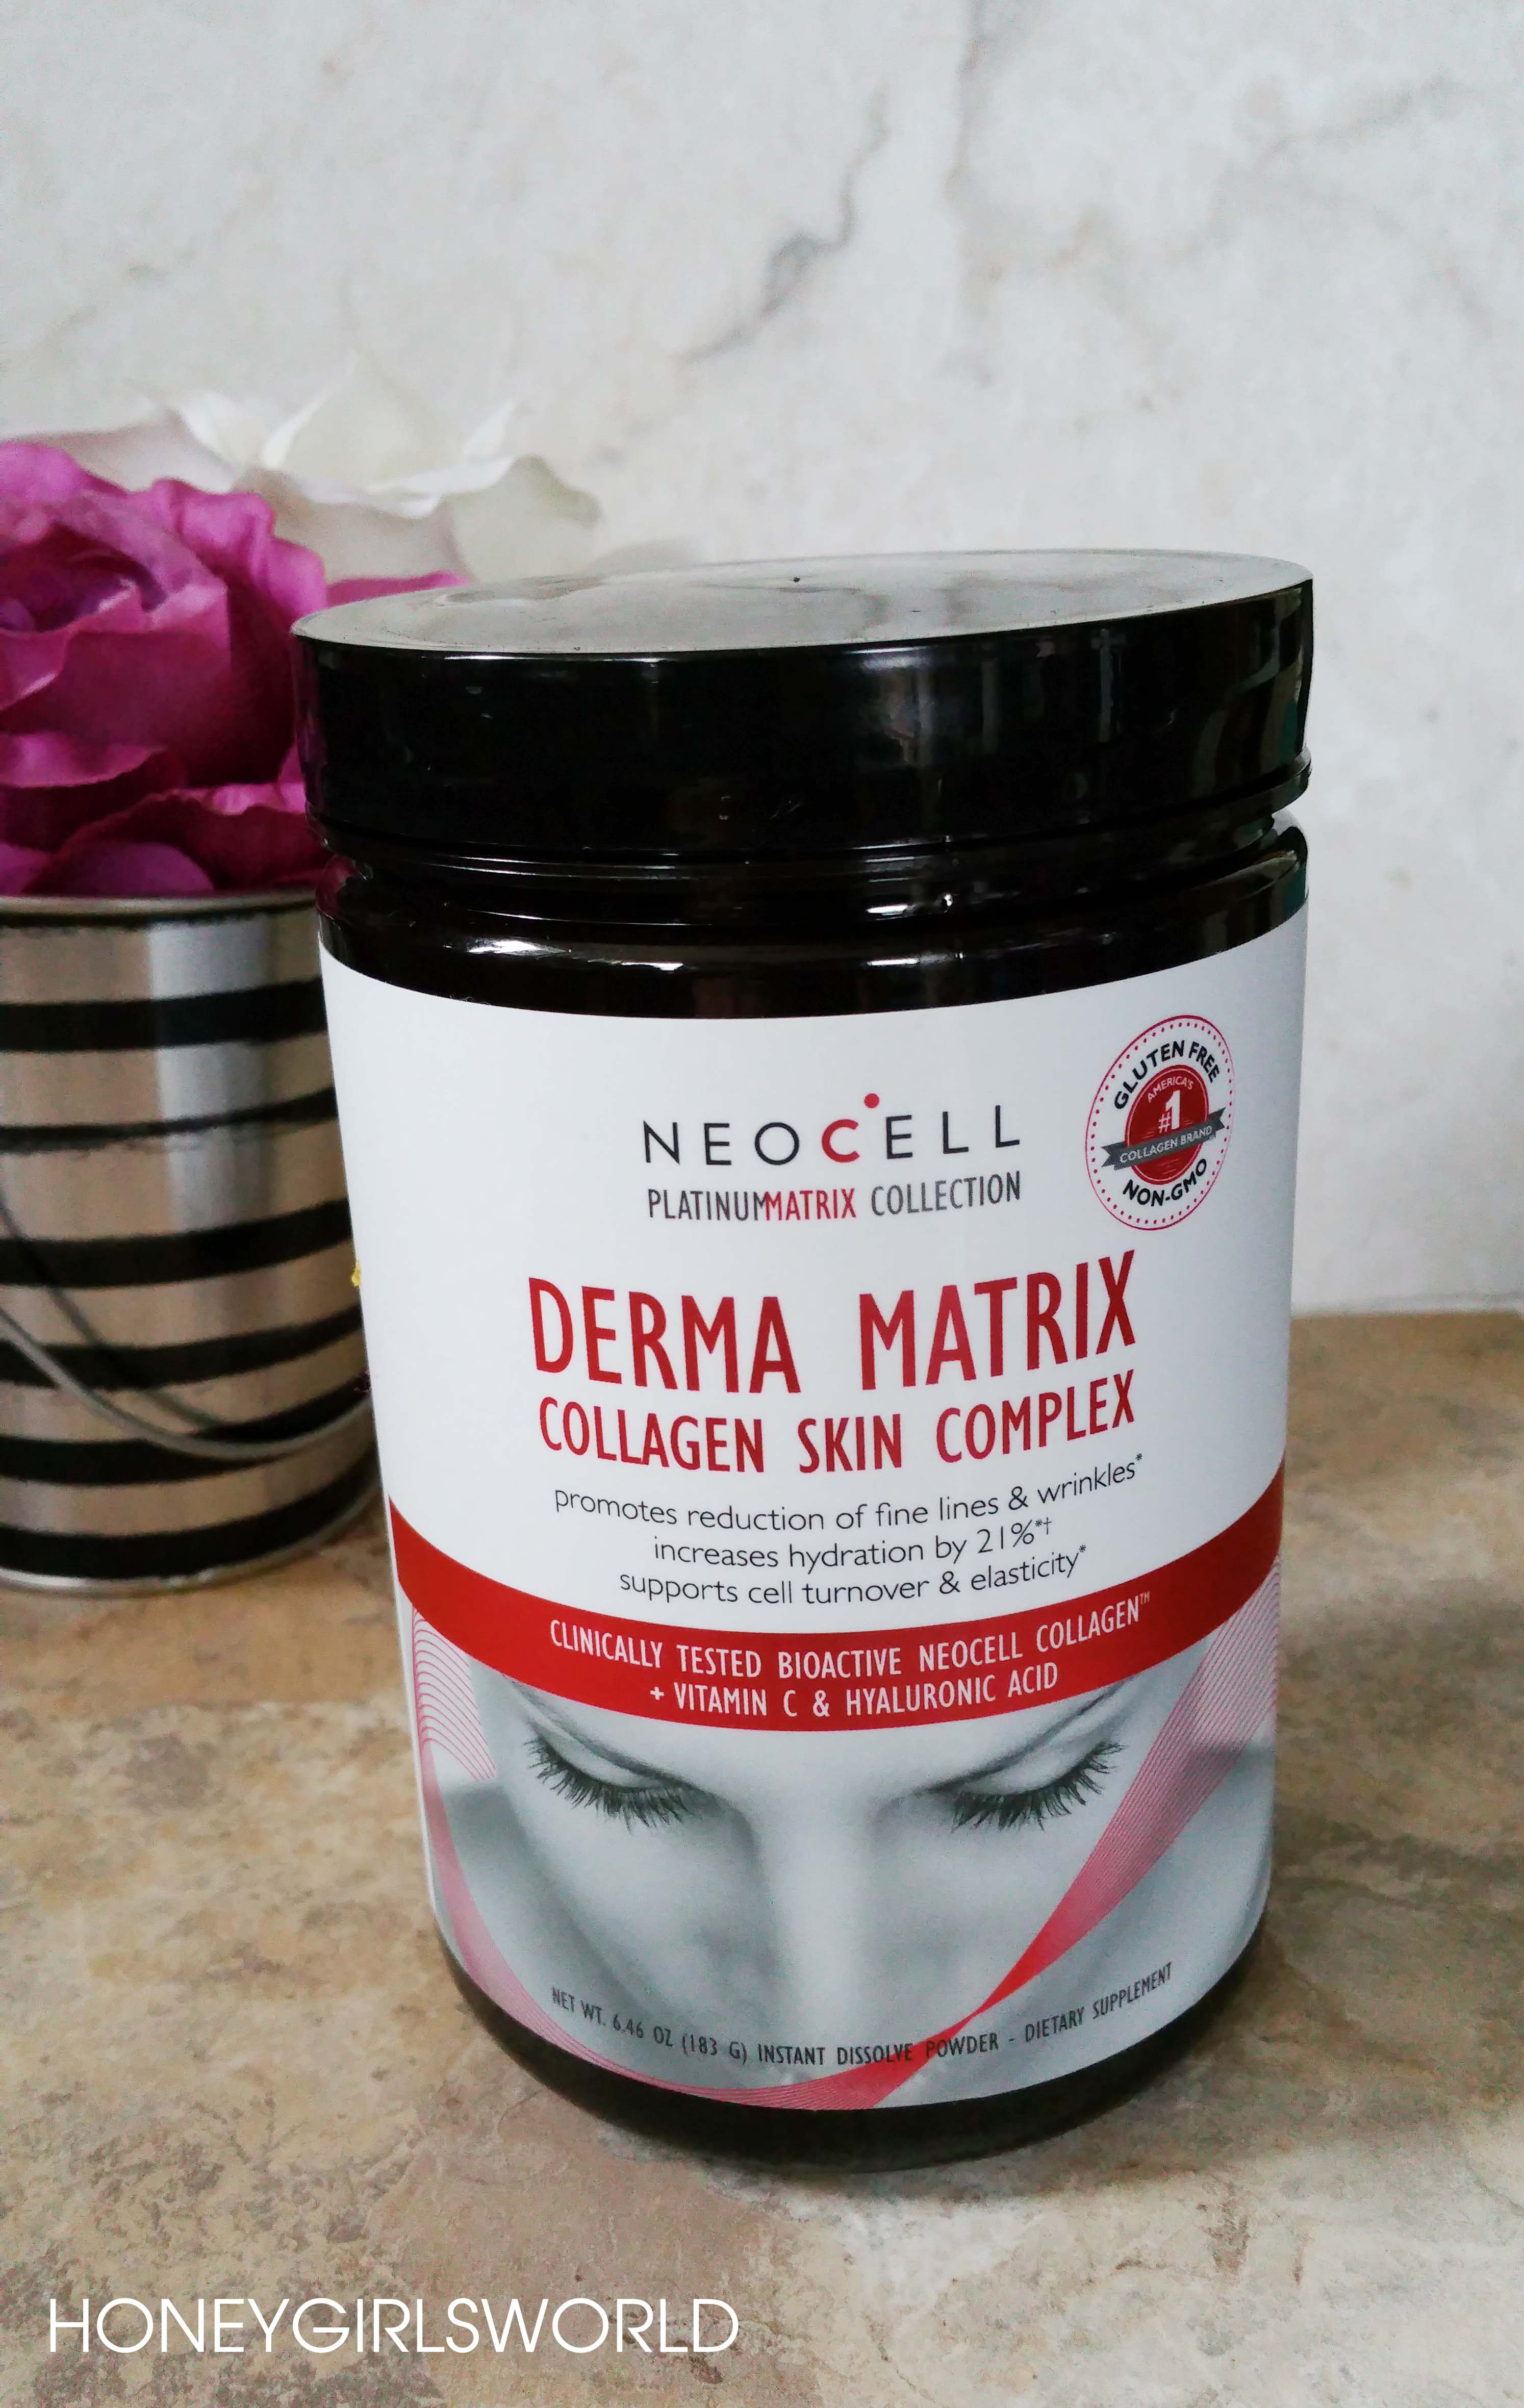 REVIEW: NeoCell Derma Matrix Collagen Skin Complex